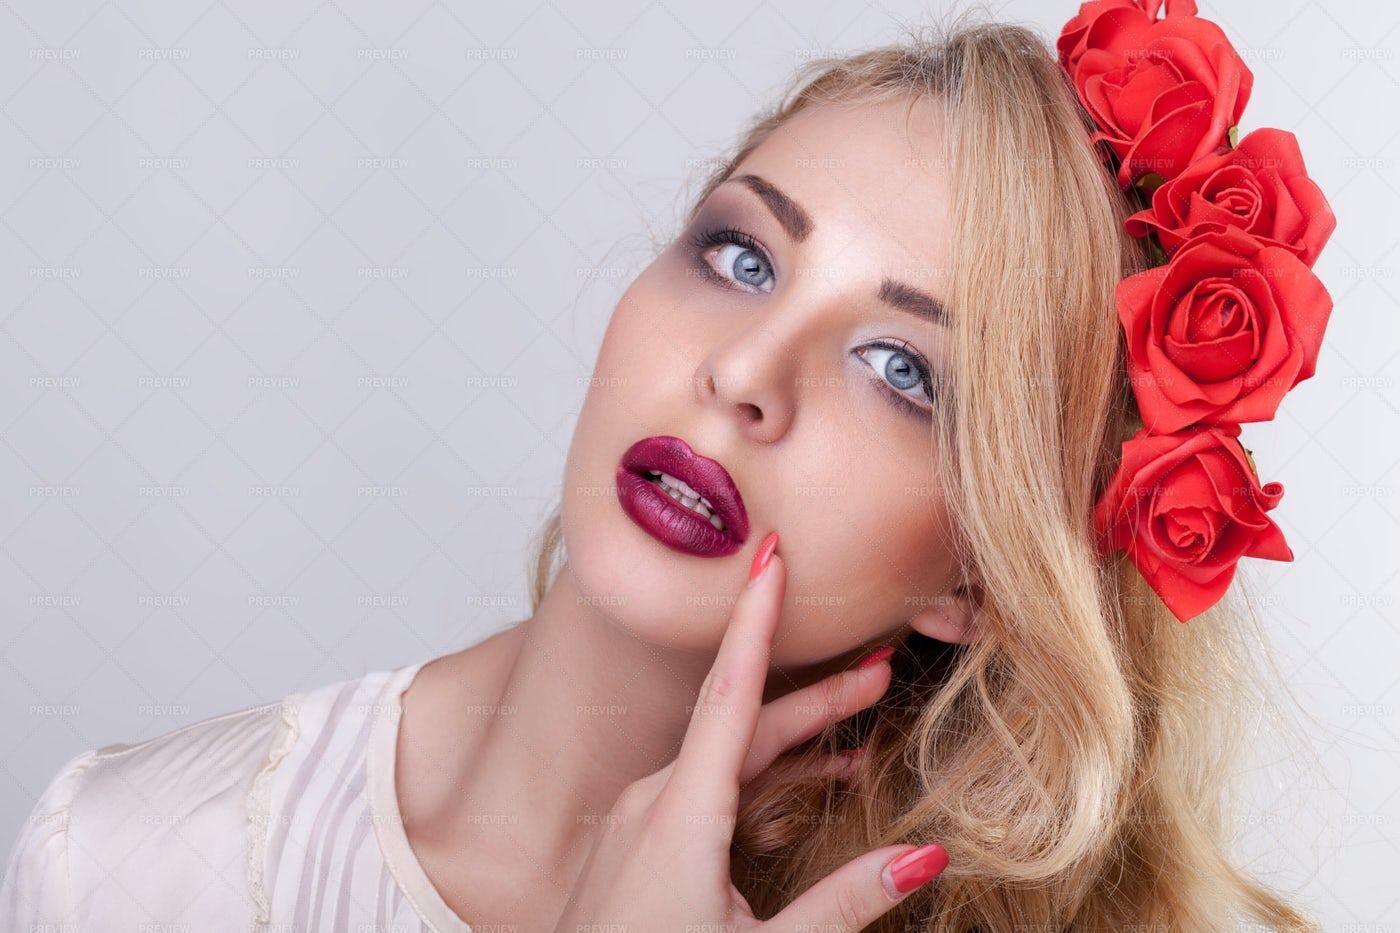 Fashionable Girl With Flower Crown: Stock Photos